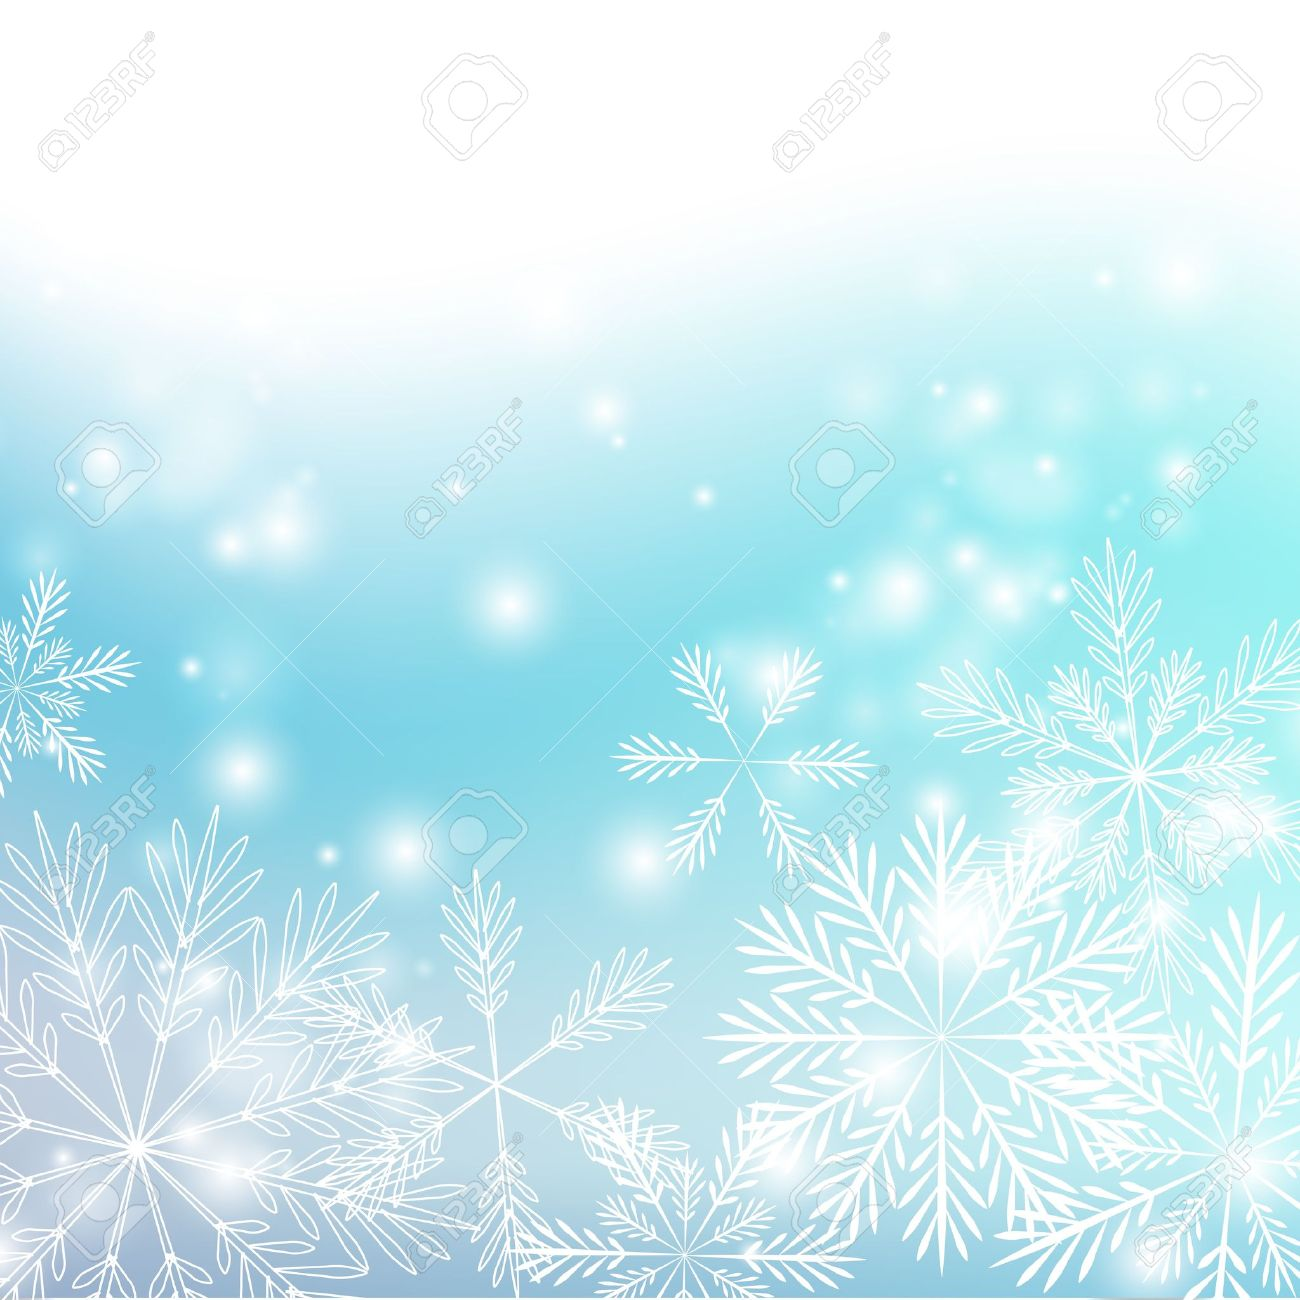 Snowflakes background with shiny lights - 15640017